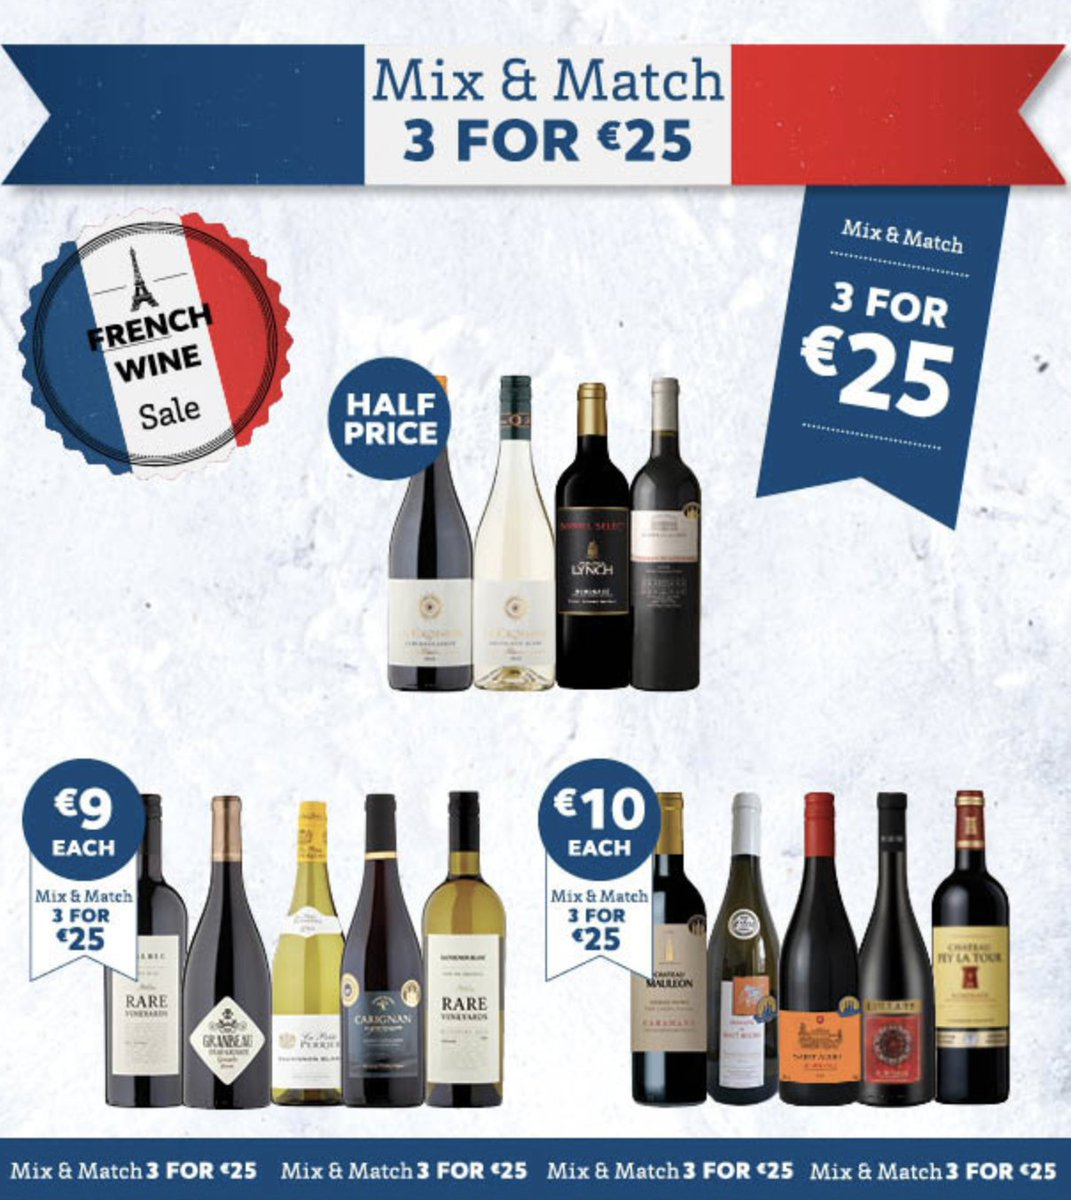 It is back! Our Famous French wine Sale.... Time to restock those shelves with amazing value! https://t.co/JB2p9WXvph